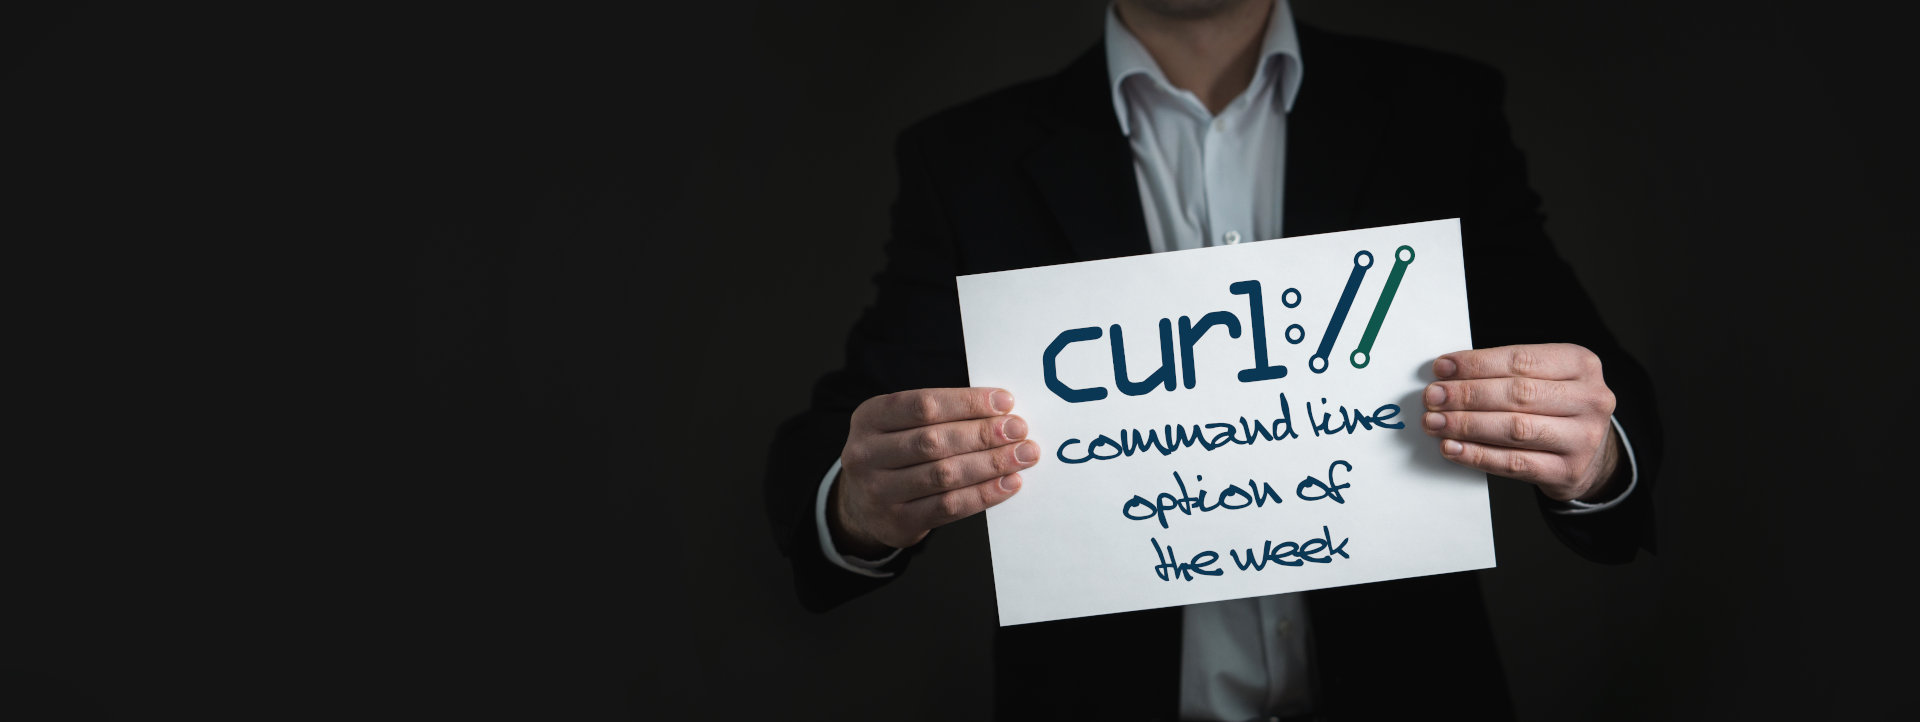 curl ootw: –mail-from